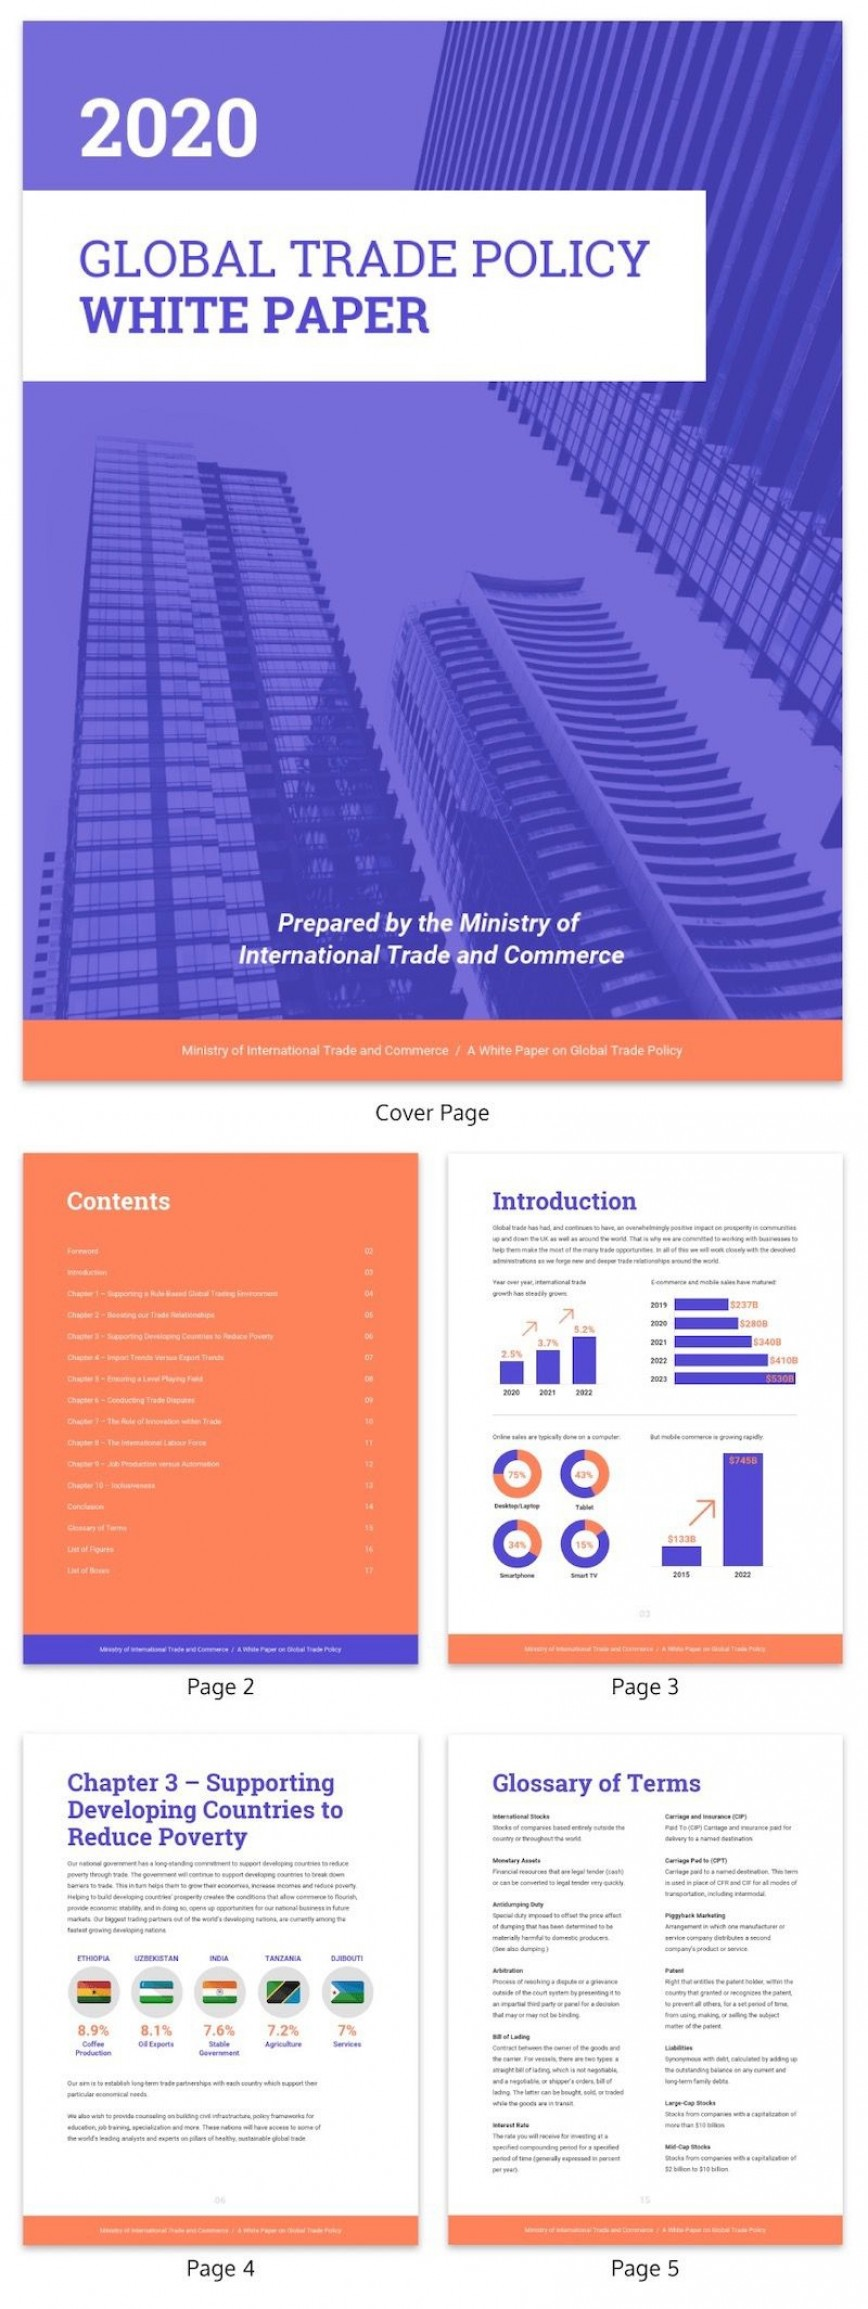 005 Unusual Technical White Paper Template Sample  Example Doc868